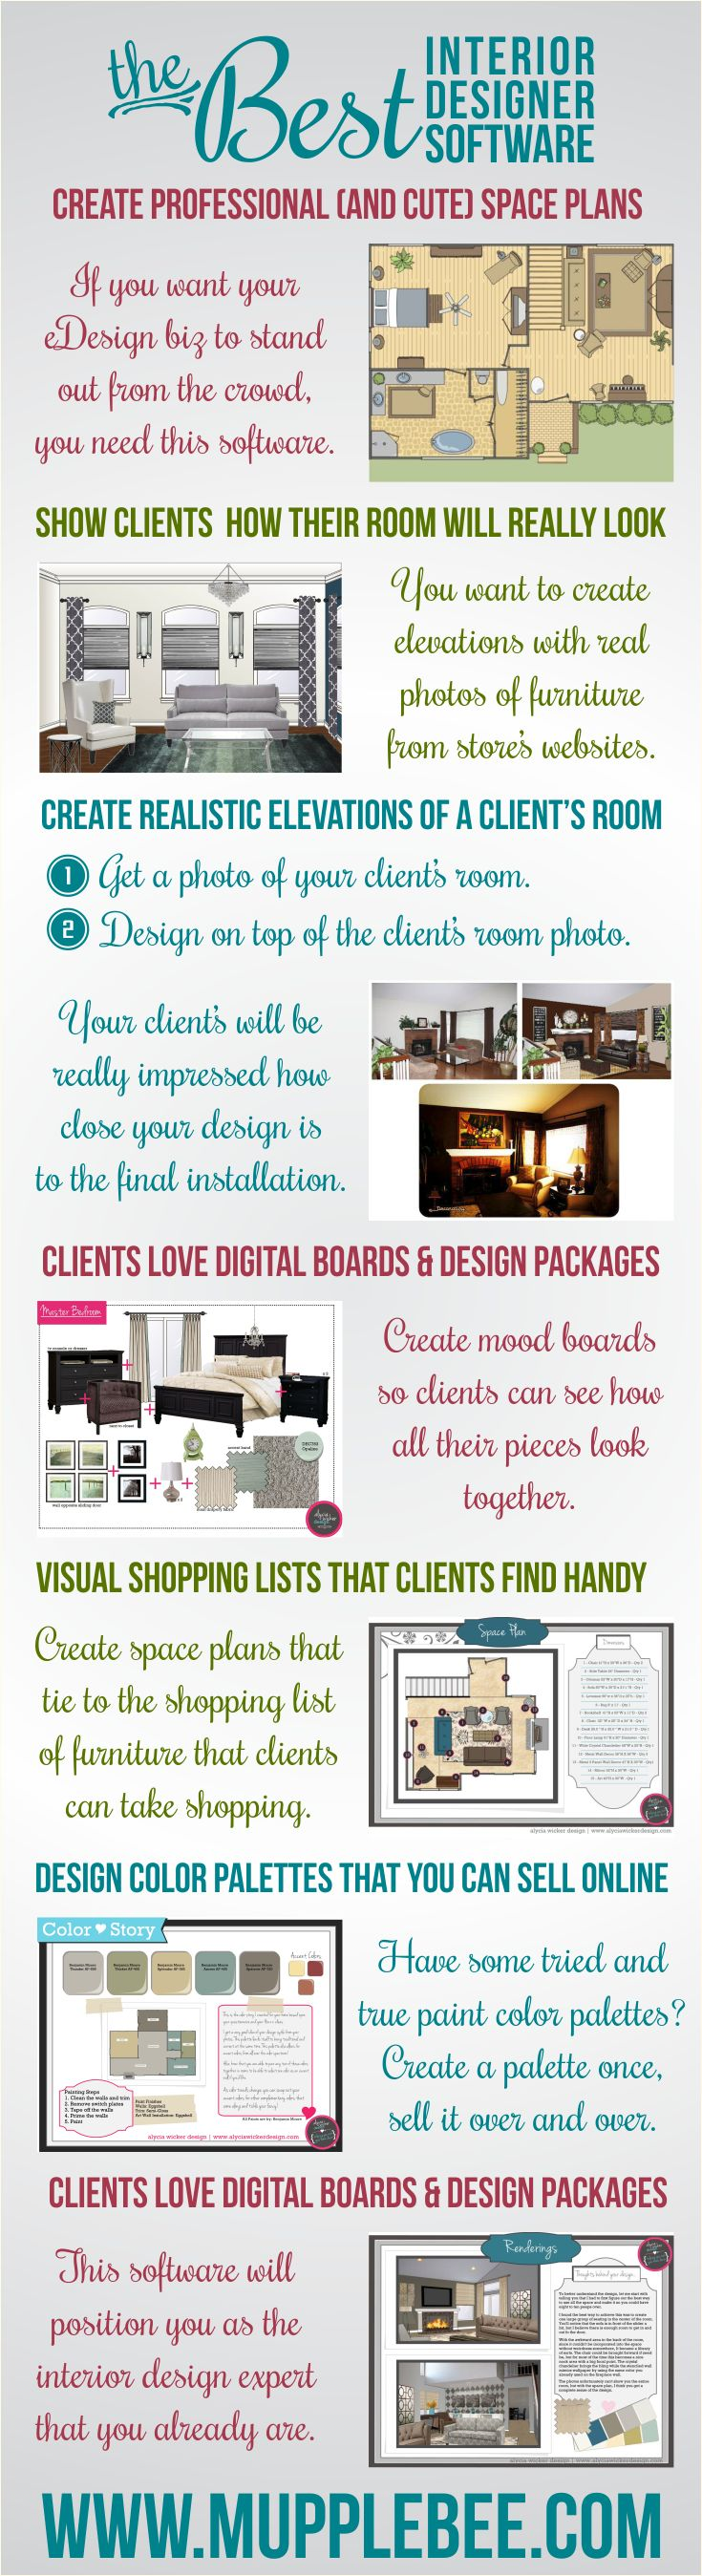 One of the best interior design software programs that you can use for your eDesign / eDecorating business. http://www.mupplebee.com/interior-design-software-for-the-coolest-interior-designers/